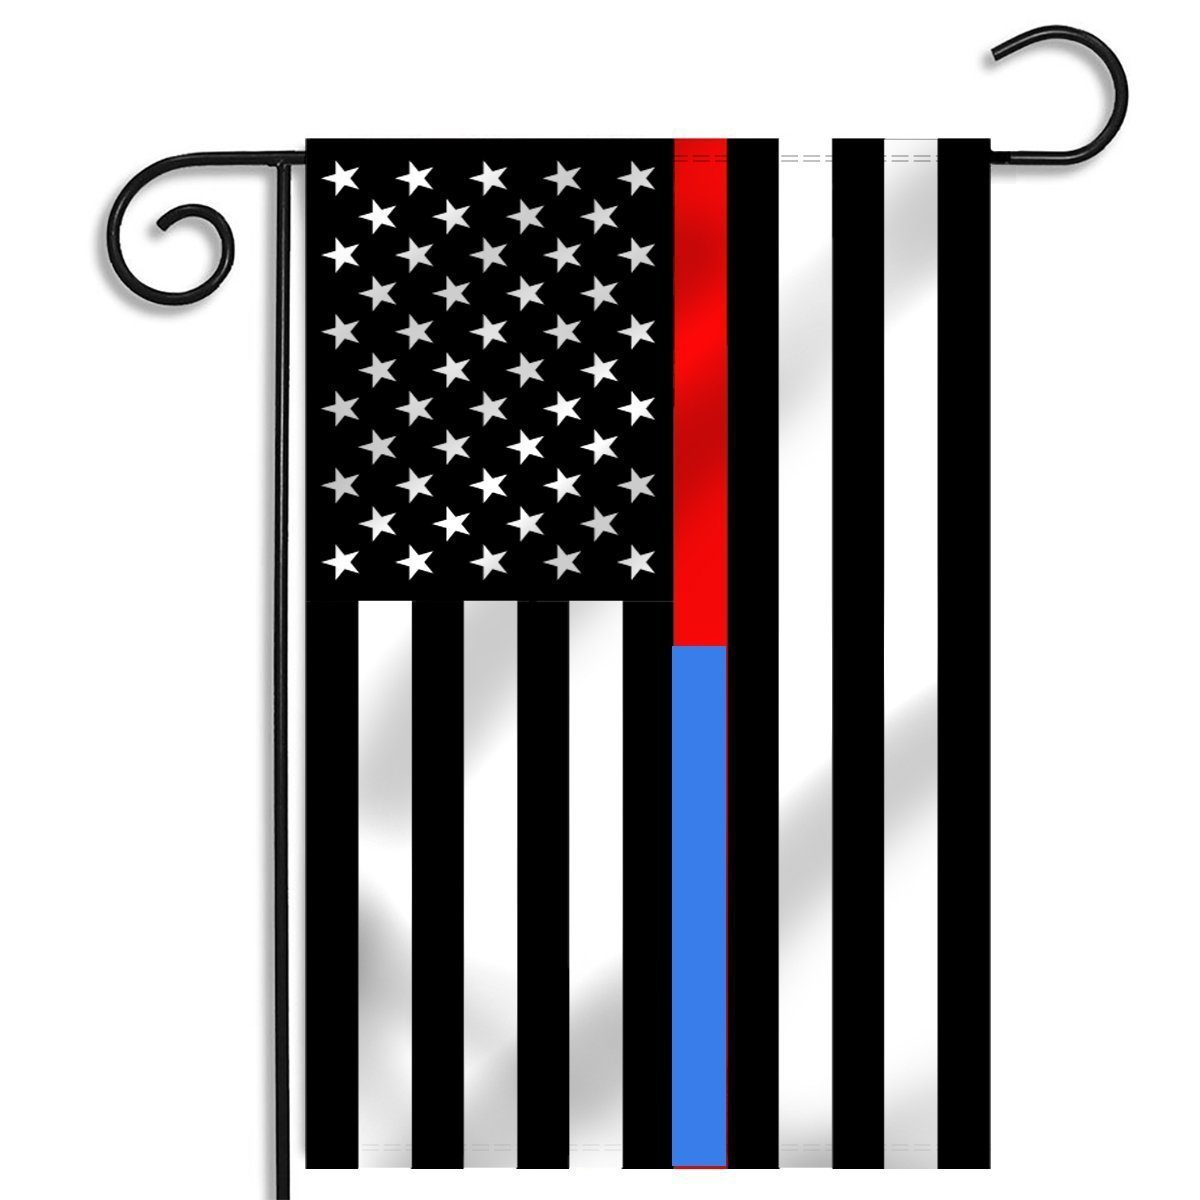 Faylagee-yx Thin Red and Blue Line American Garden Flag 12.5 x 18-Inch Made By Oxford,Blue and Red